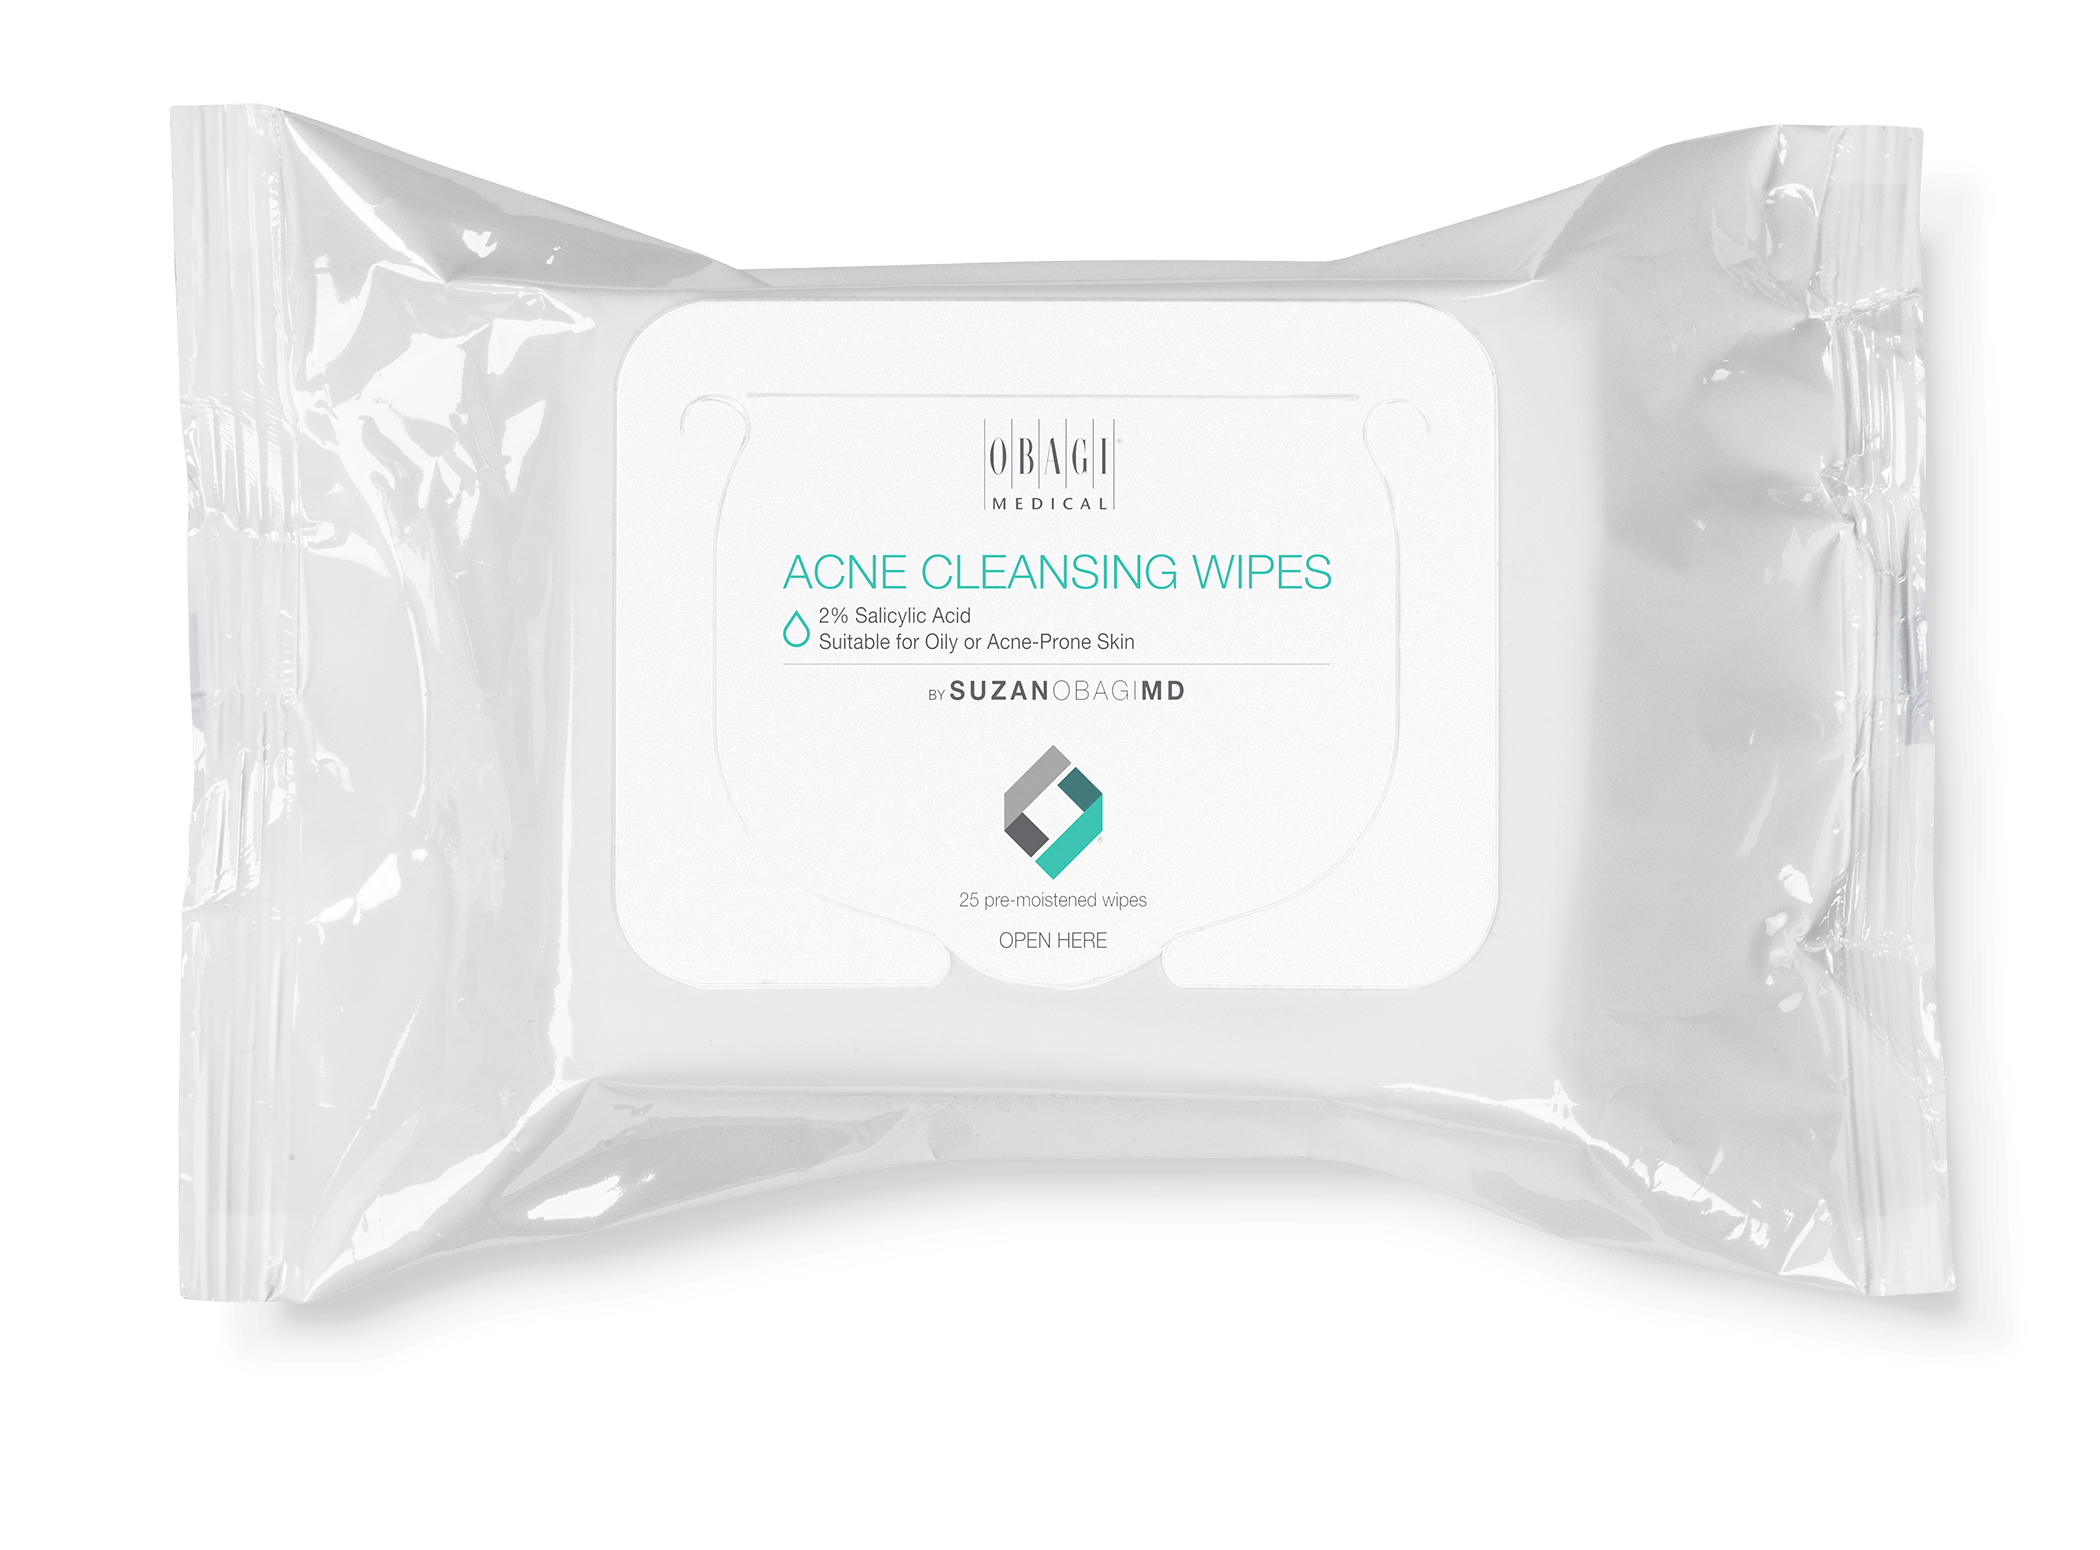 image descriptionObagi - On the Go Cleansing Wipes for Oily or Acne Prone Skin